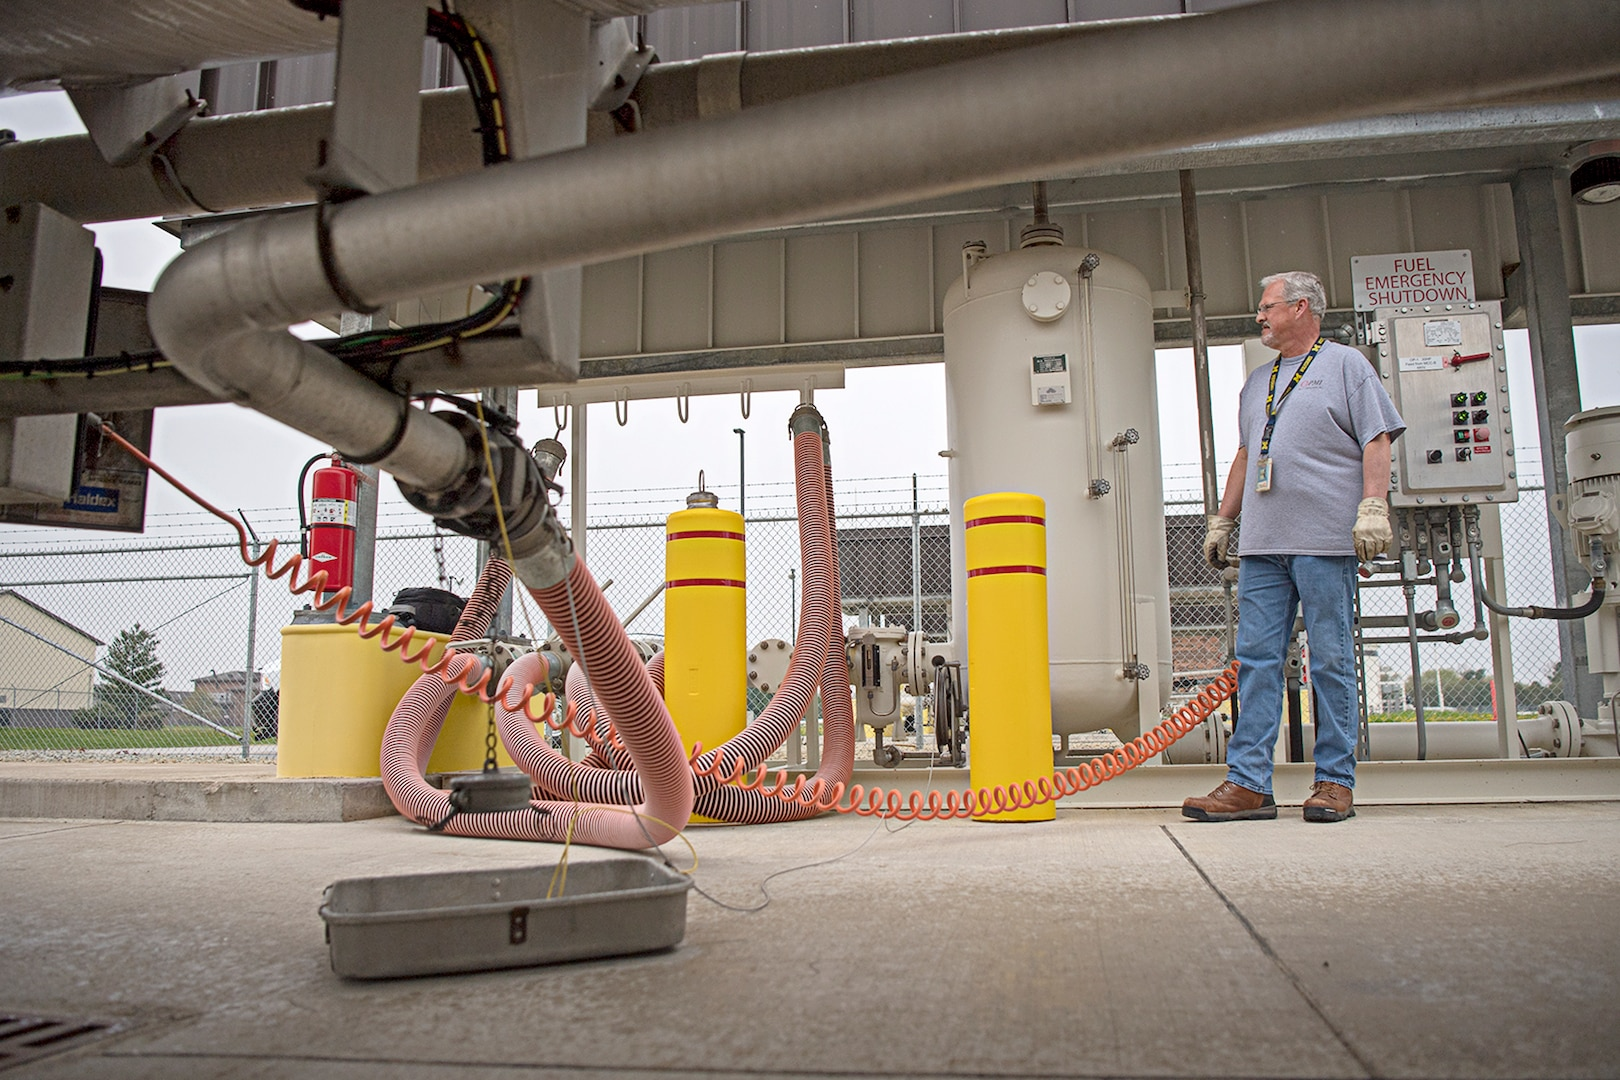 Fueling the fight got a little easier recently as Grissom brought a new $35-million fuel hydrant system on-line.